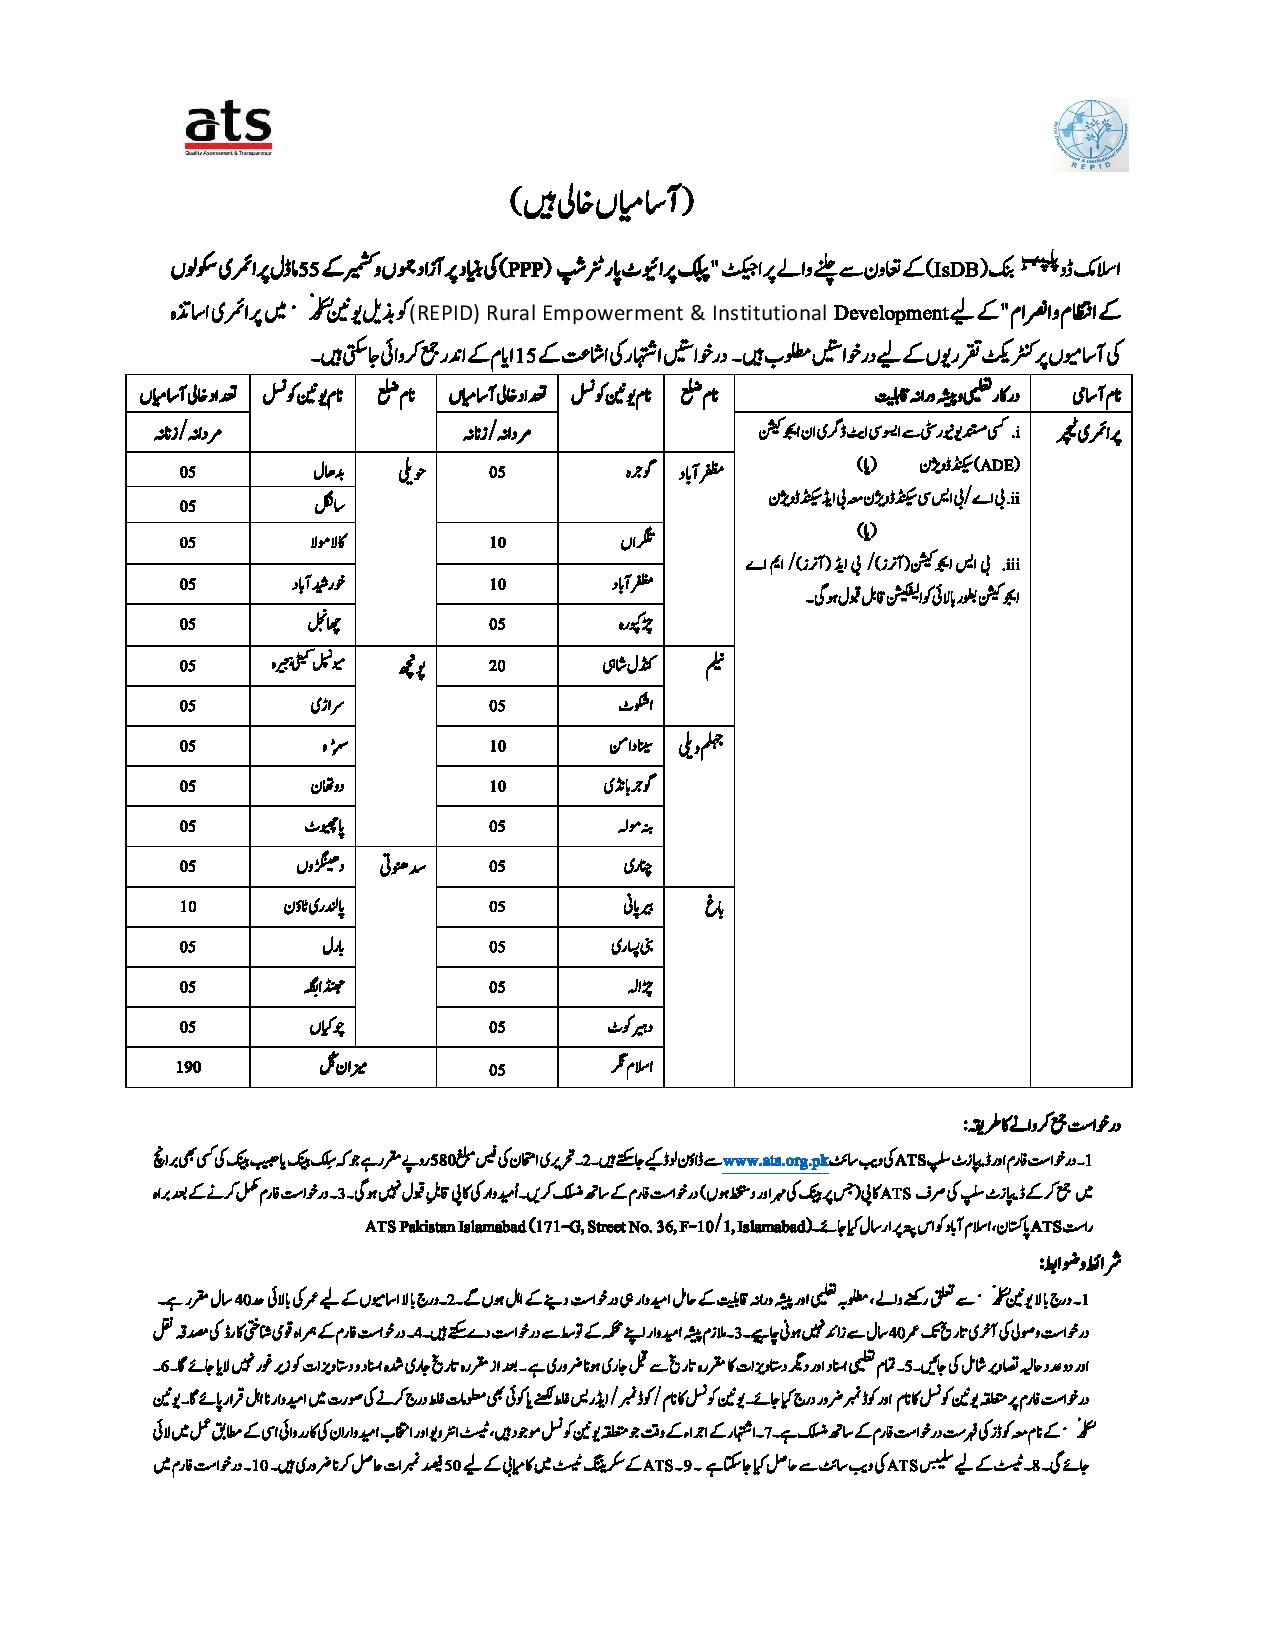 Azad Jammu Kashmir AJK Primary Teacher Jobs ATS Test Results